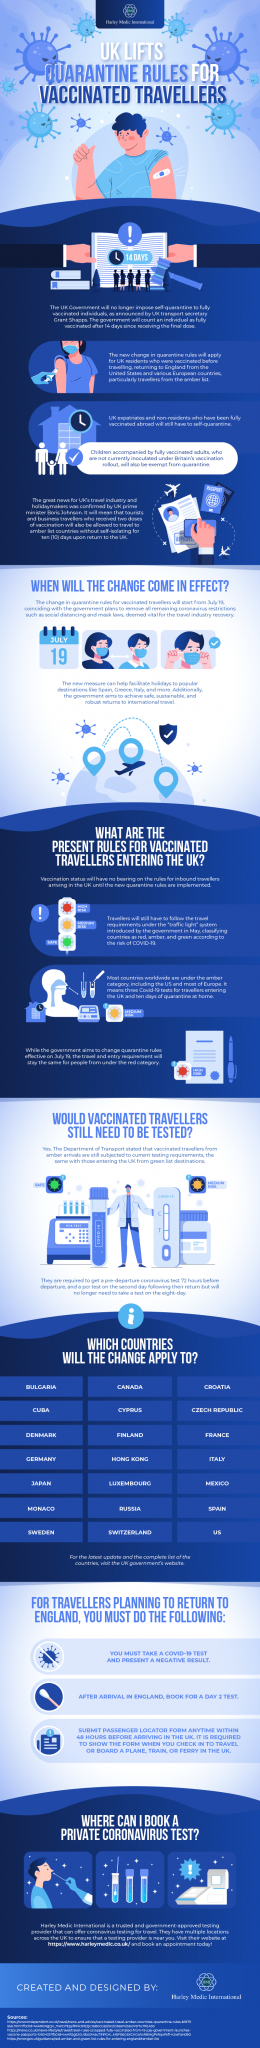 UK Lifts Quarantine Rules for Vaccinated Travellers